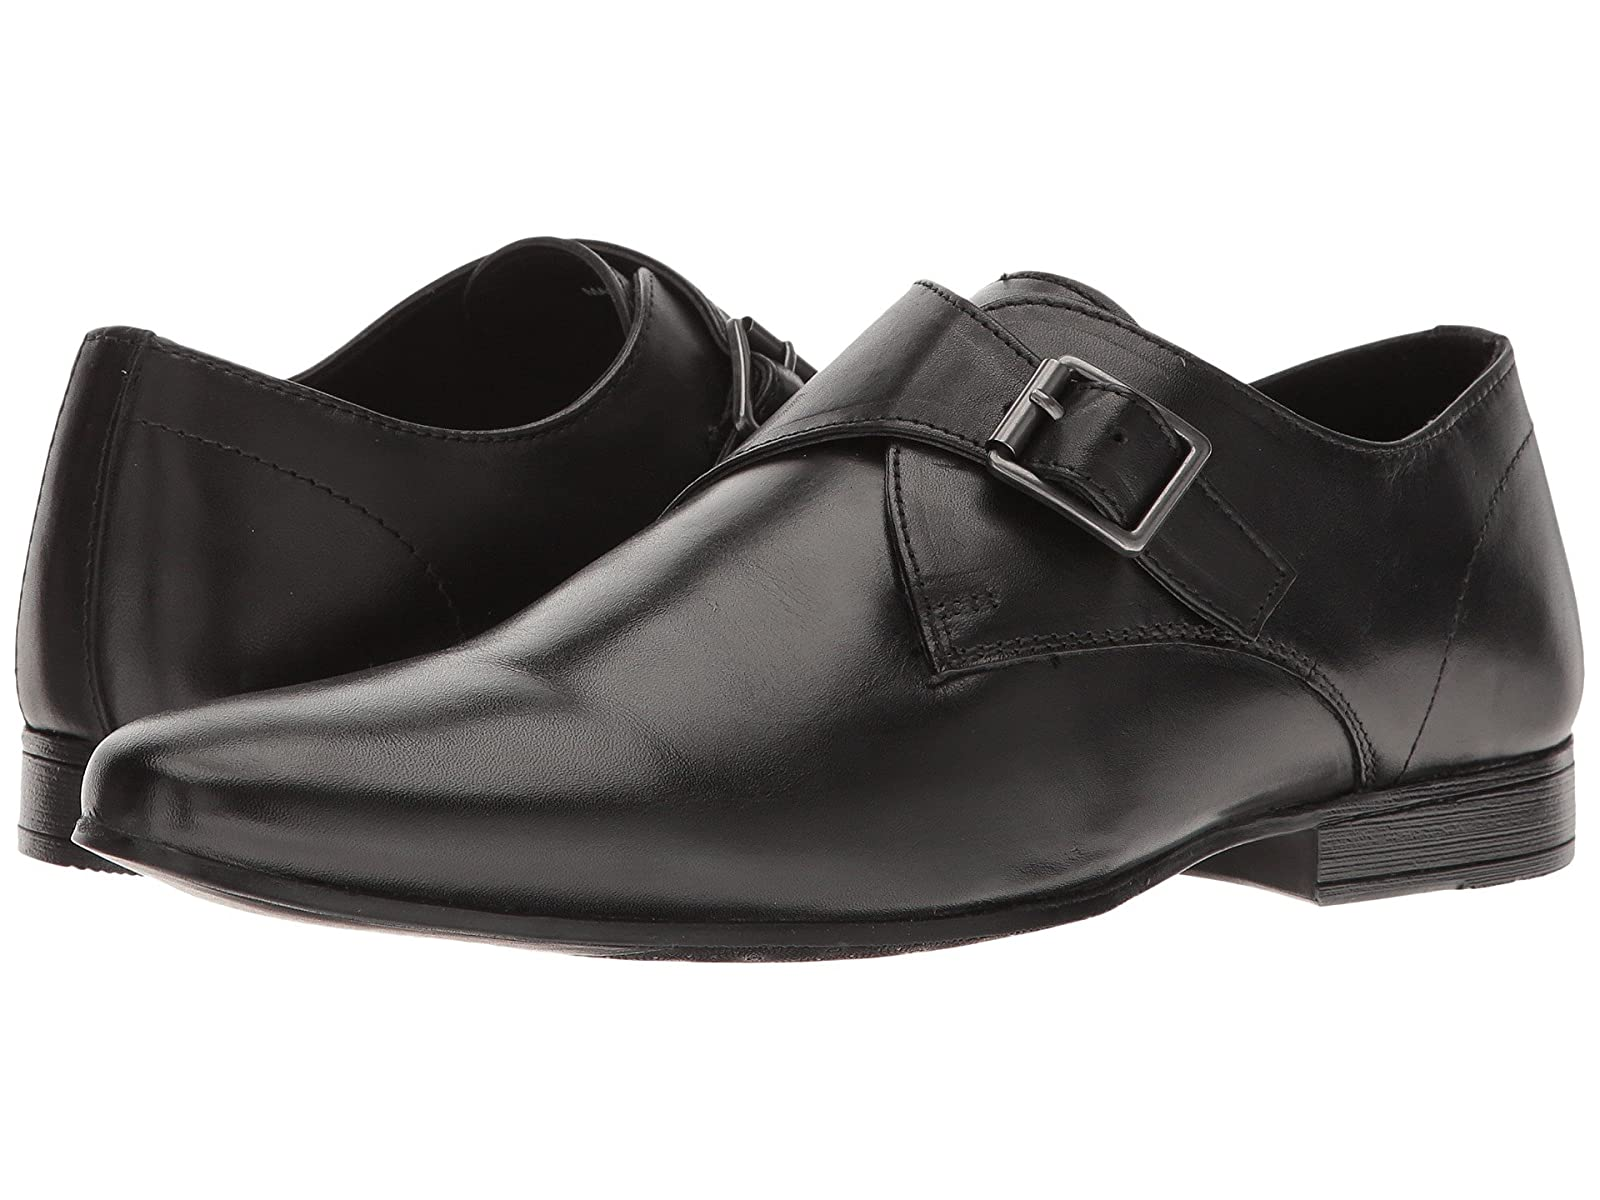 Kenneth Cole Reaction Book ShopAtmospheric grades have affordable shoes